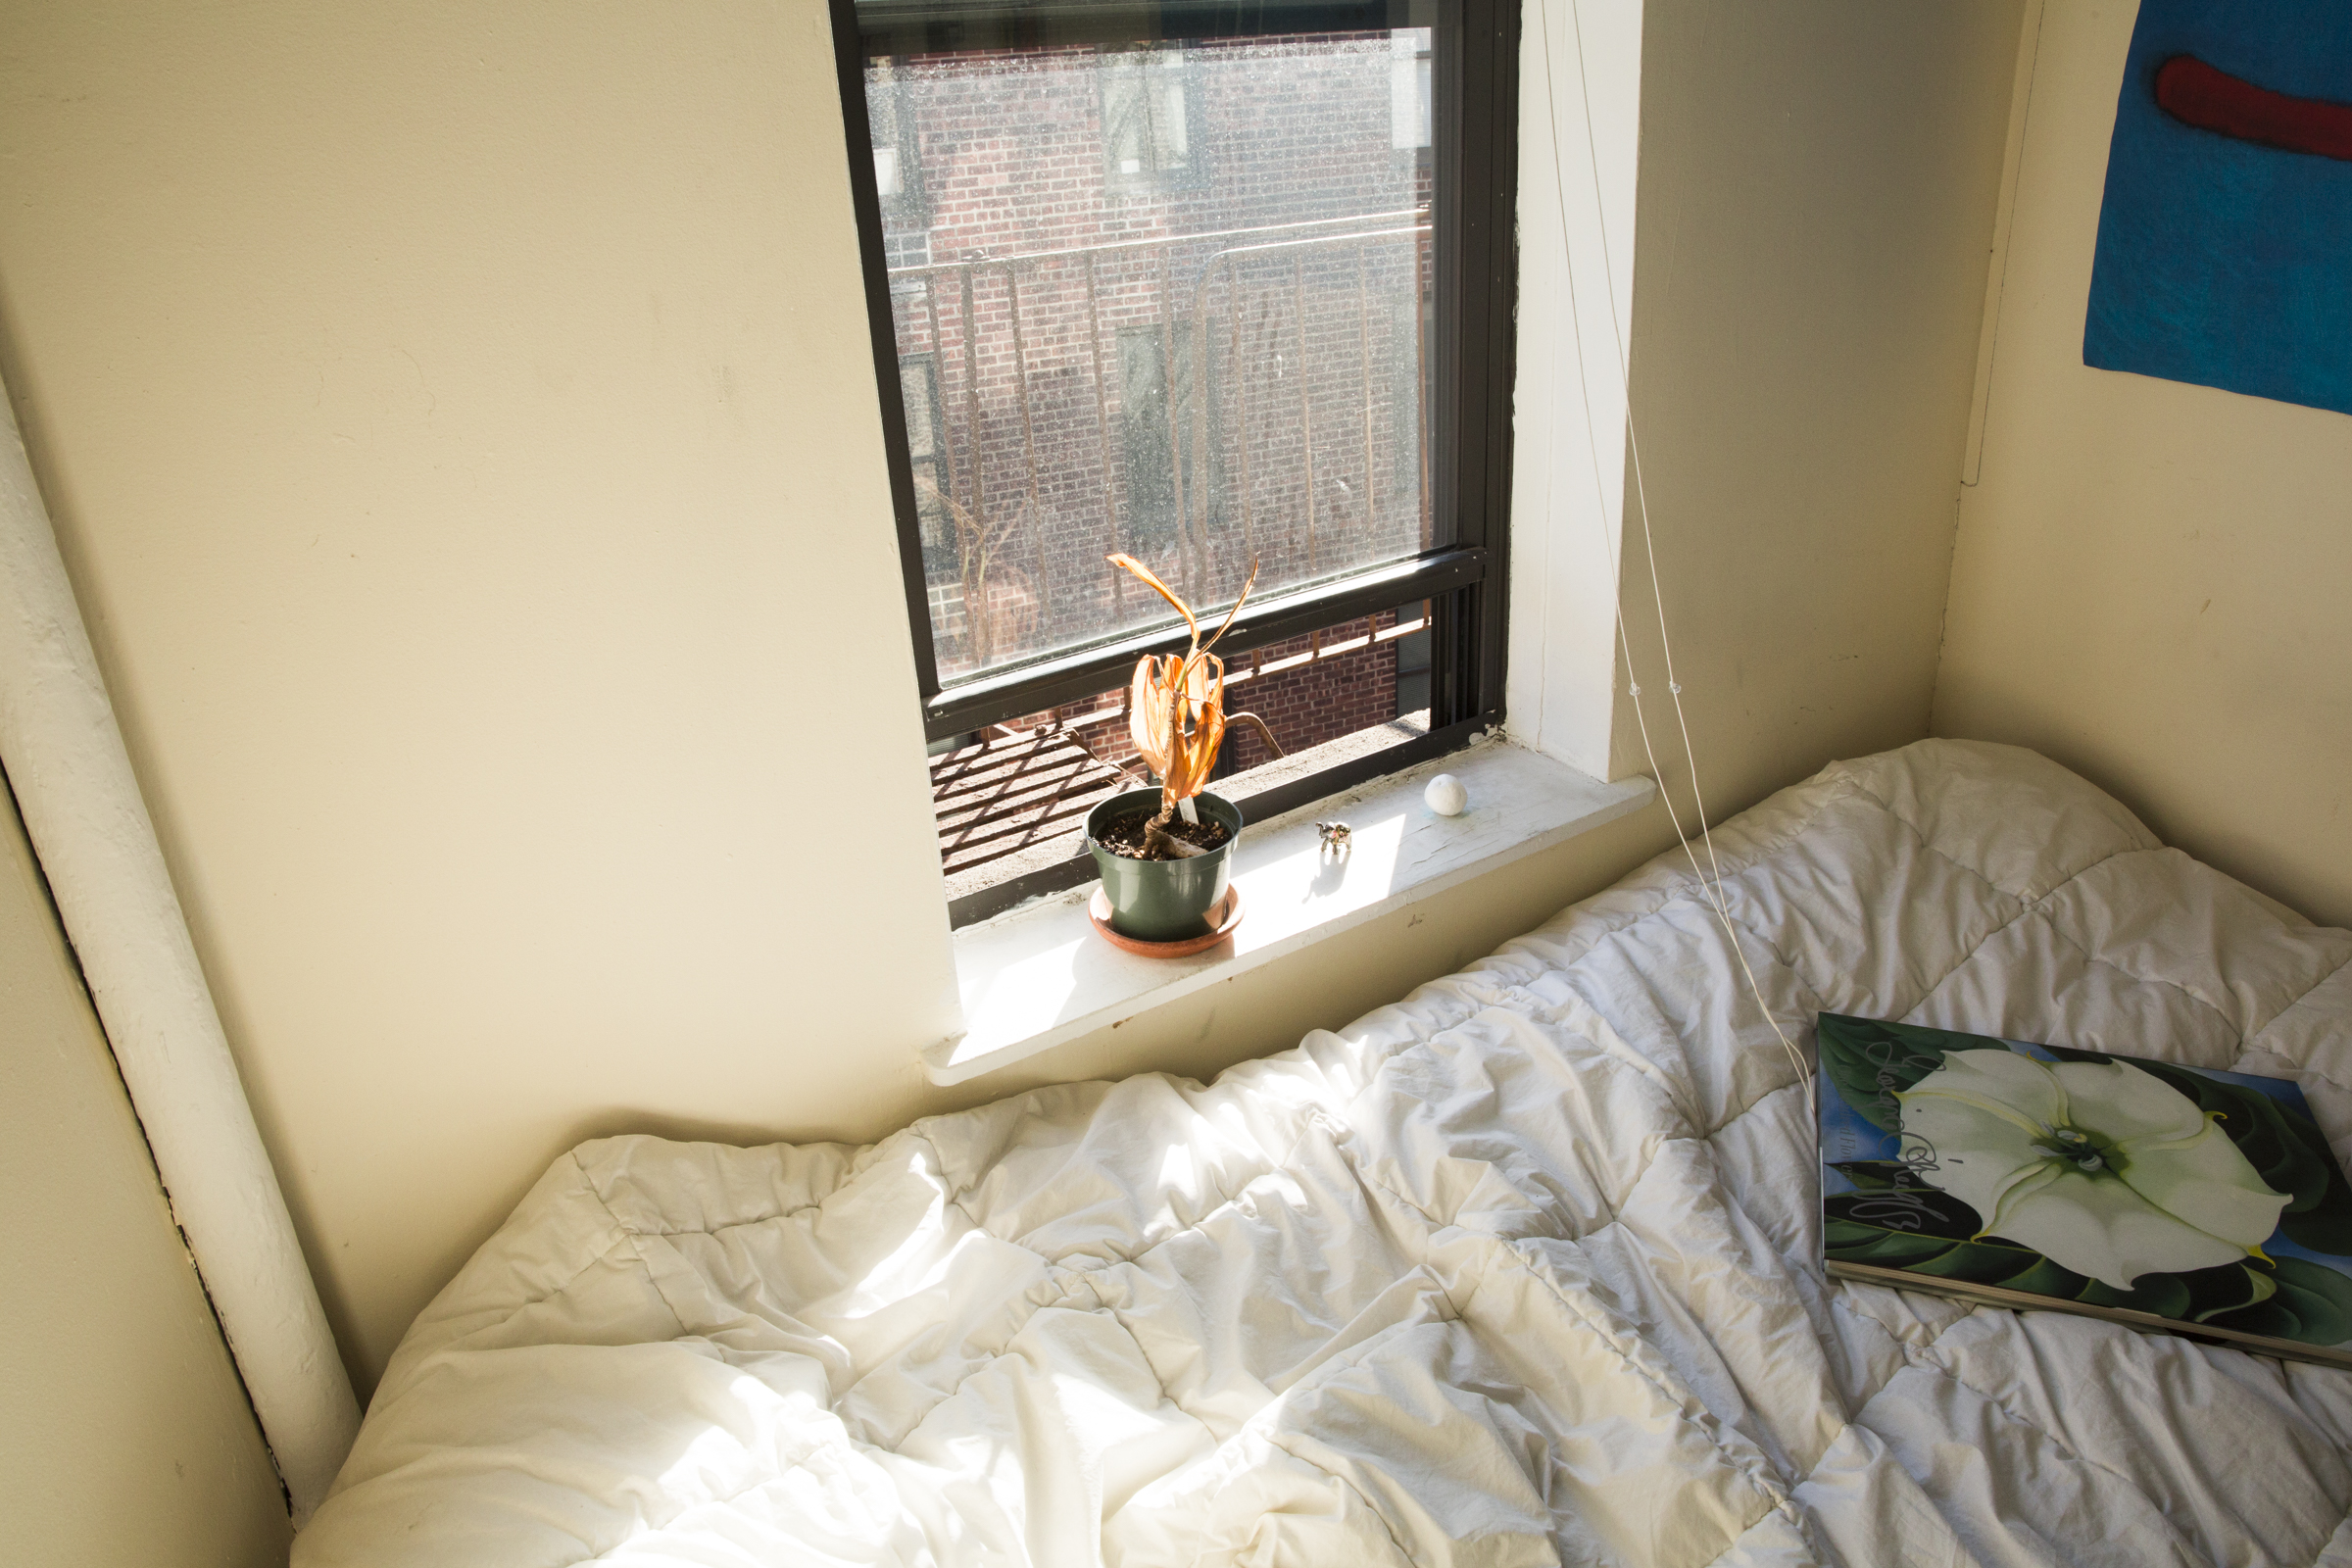 Aaron's room in the afternoon sunlight.